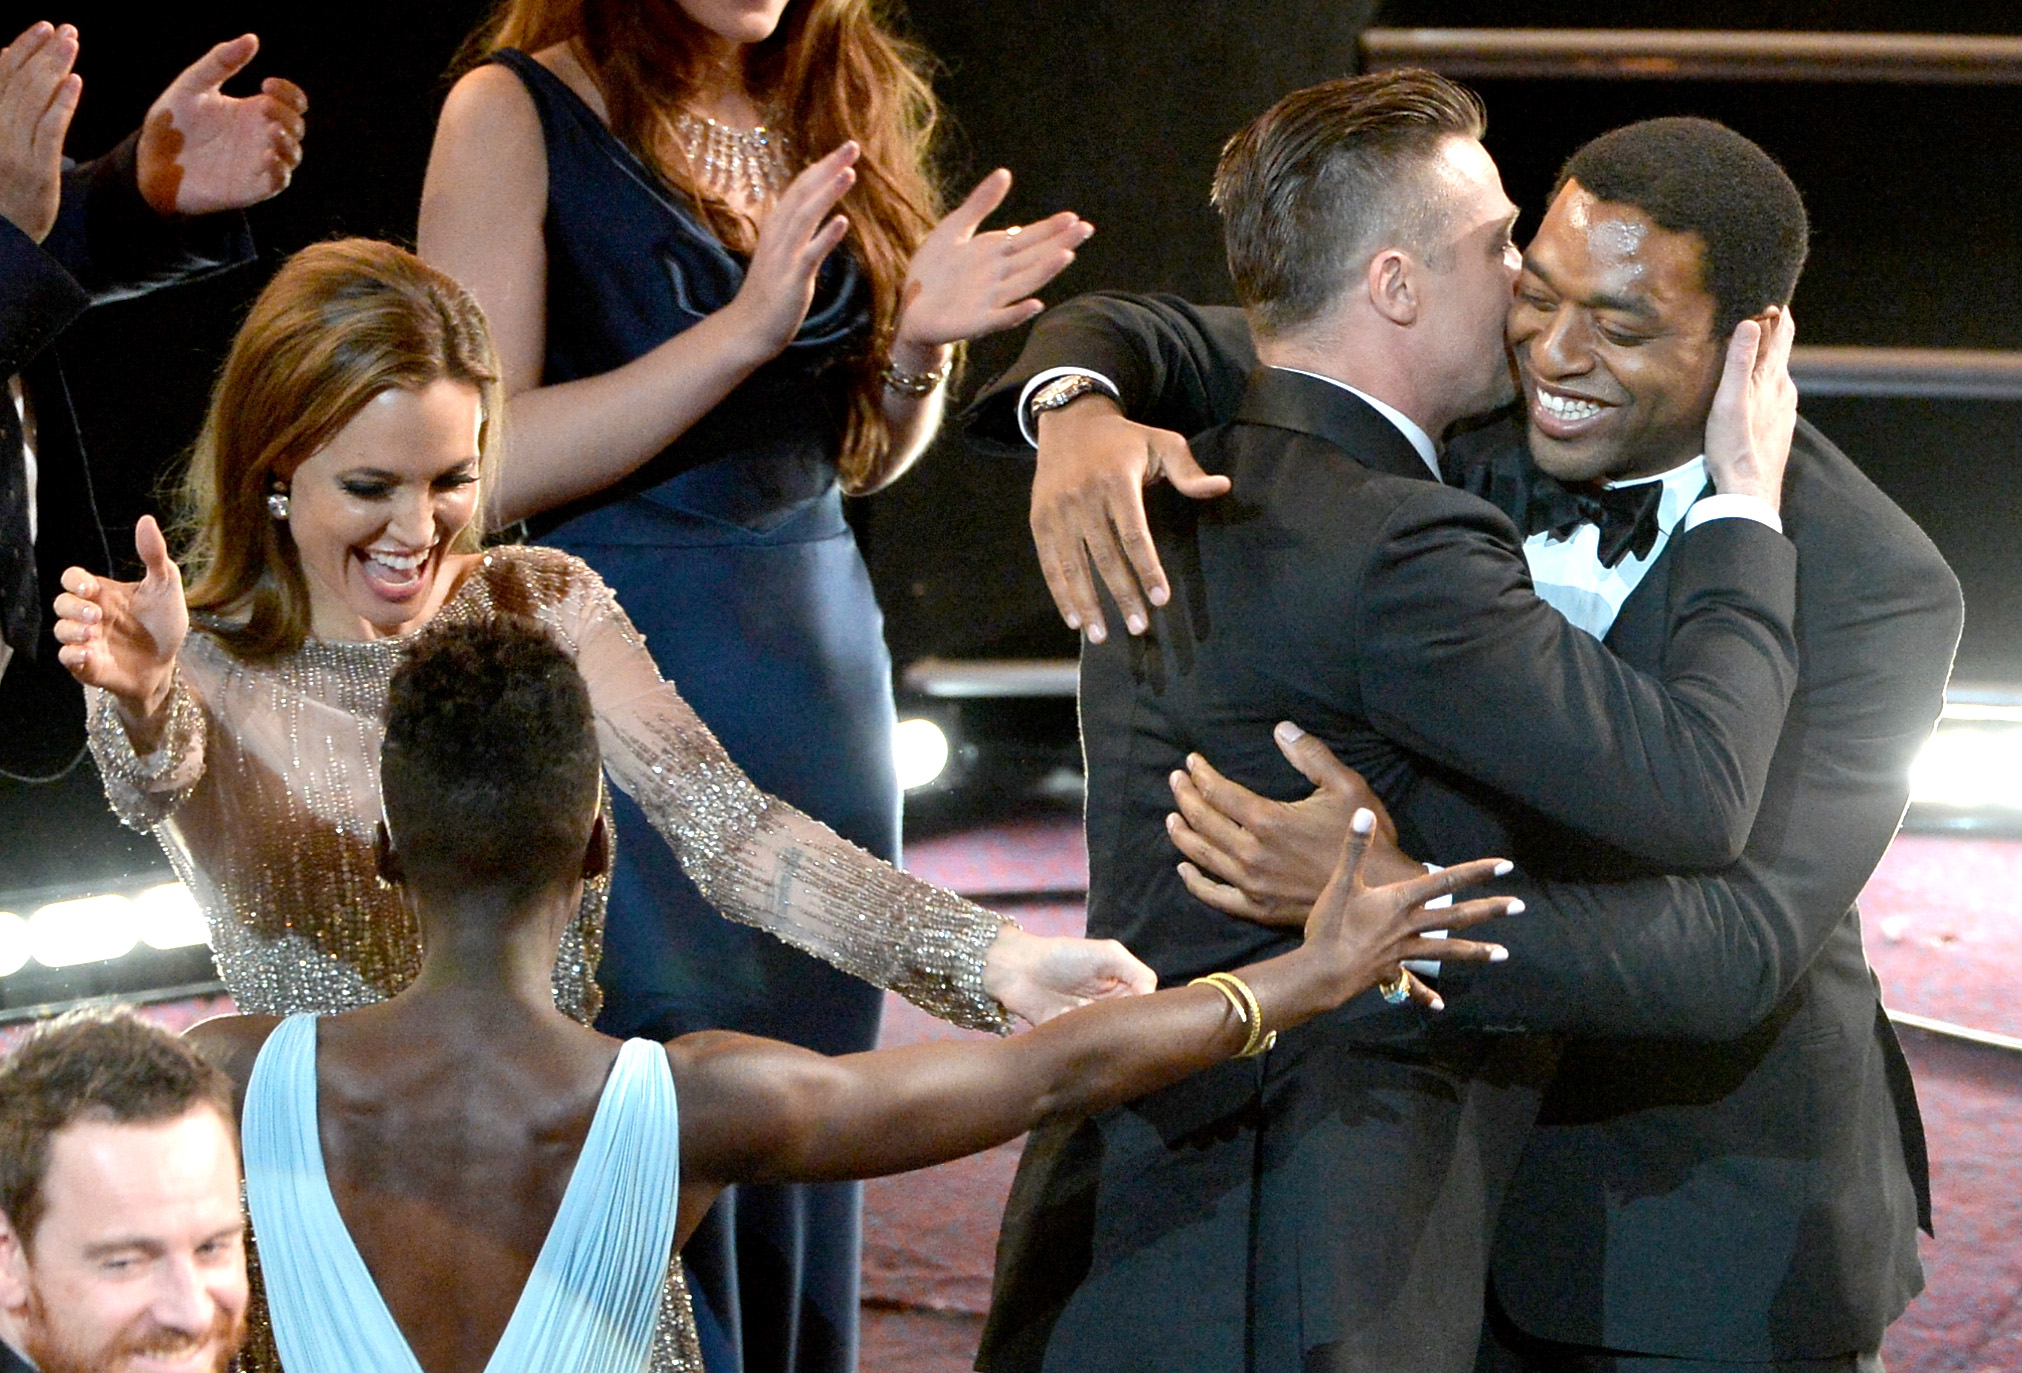 Angelina Jolie, Brad Pitt, Lupita Nyong'o, and Chiwetel Ejiofor couldn't contain their exciteme